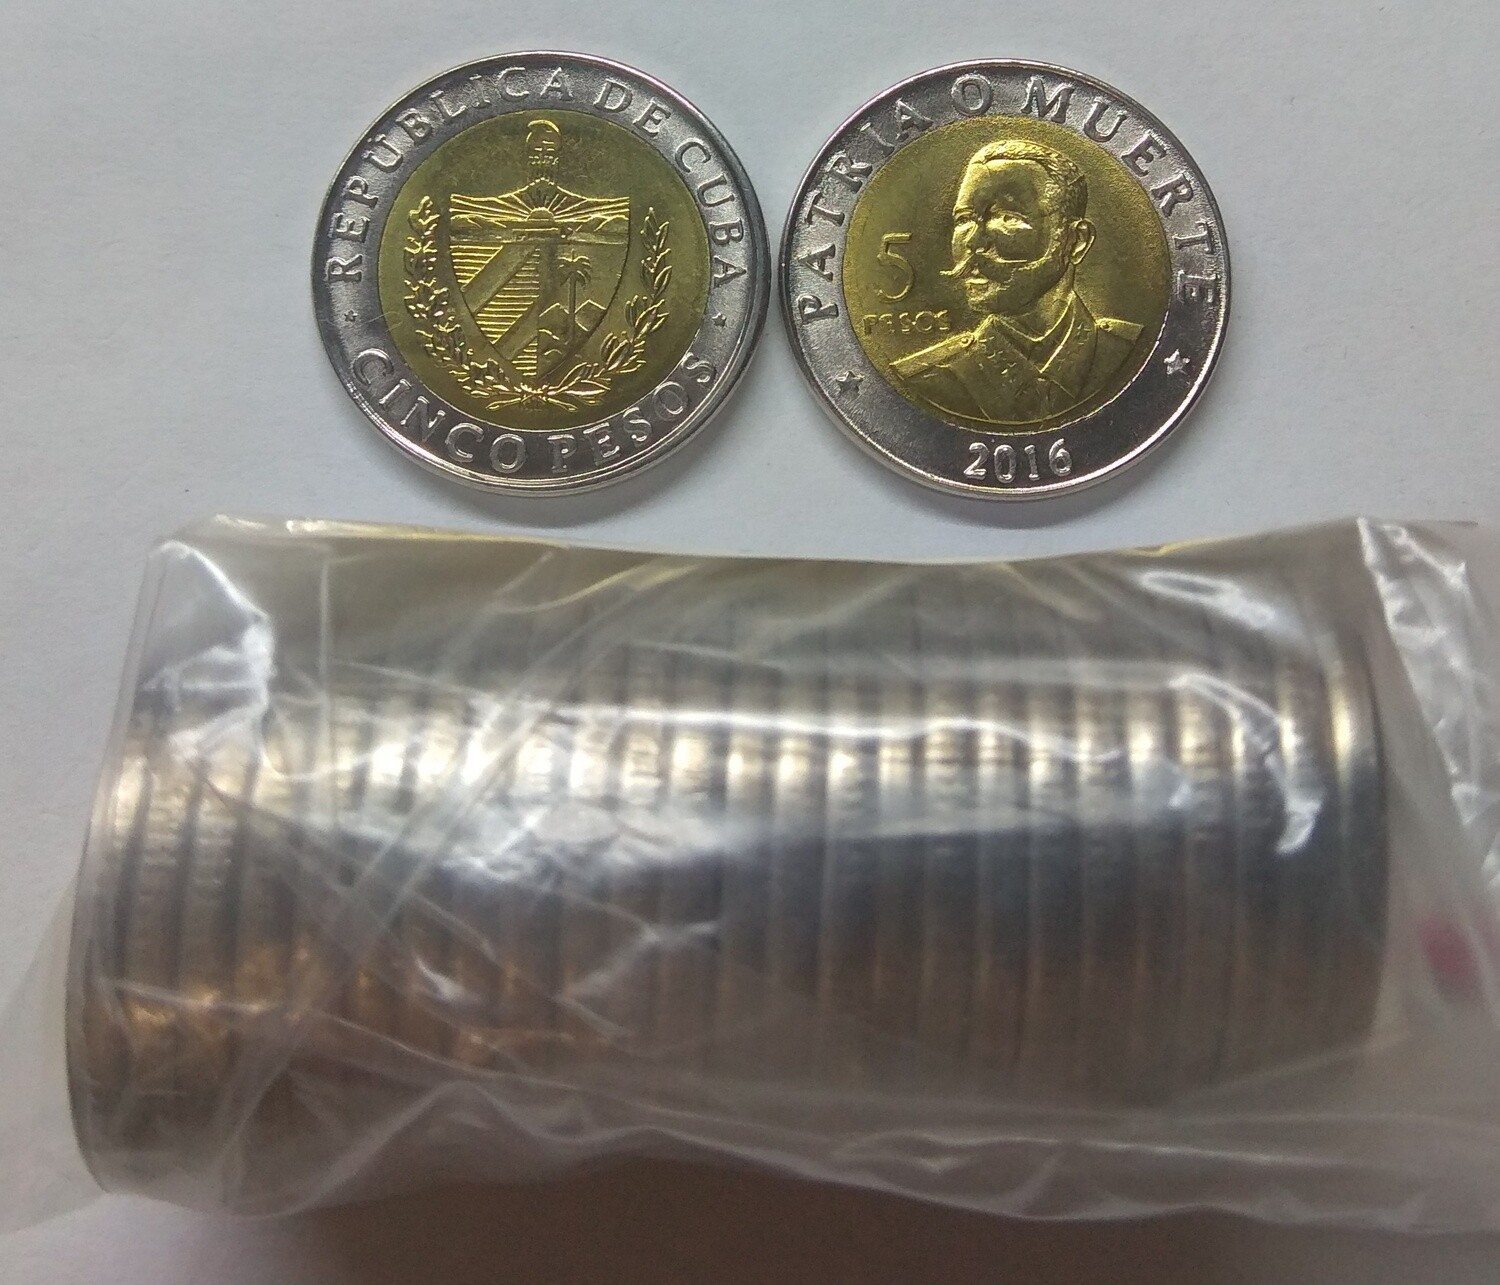 Cuba. 2017. 5 pesos - roll of 25 coins. 120th Anniversary - Death of Antonio Maceo. Type: 2016. Bi-Metallic (Ni-Steel + Brass - Steel) 4.520 g. UC#112. UNC